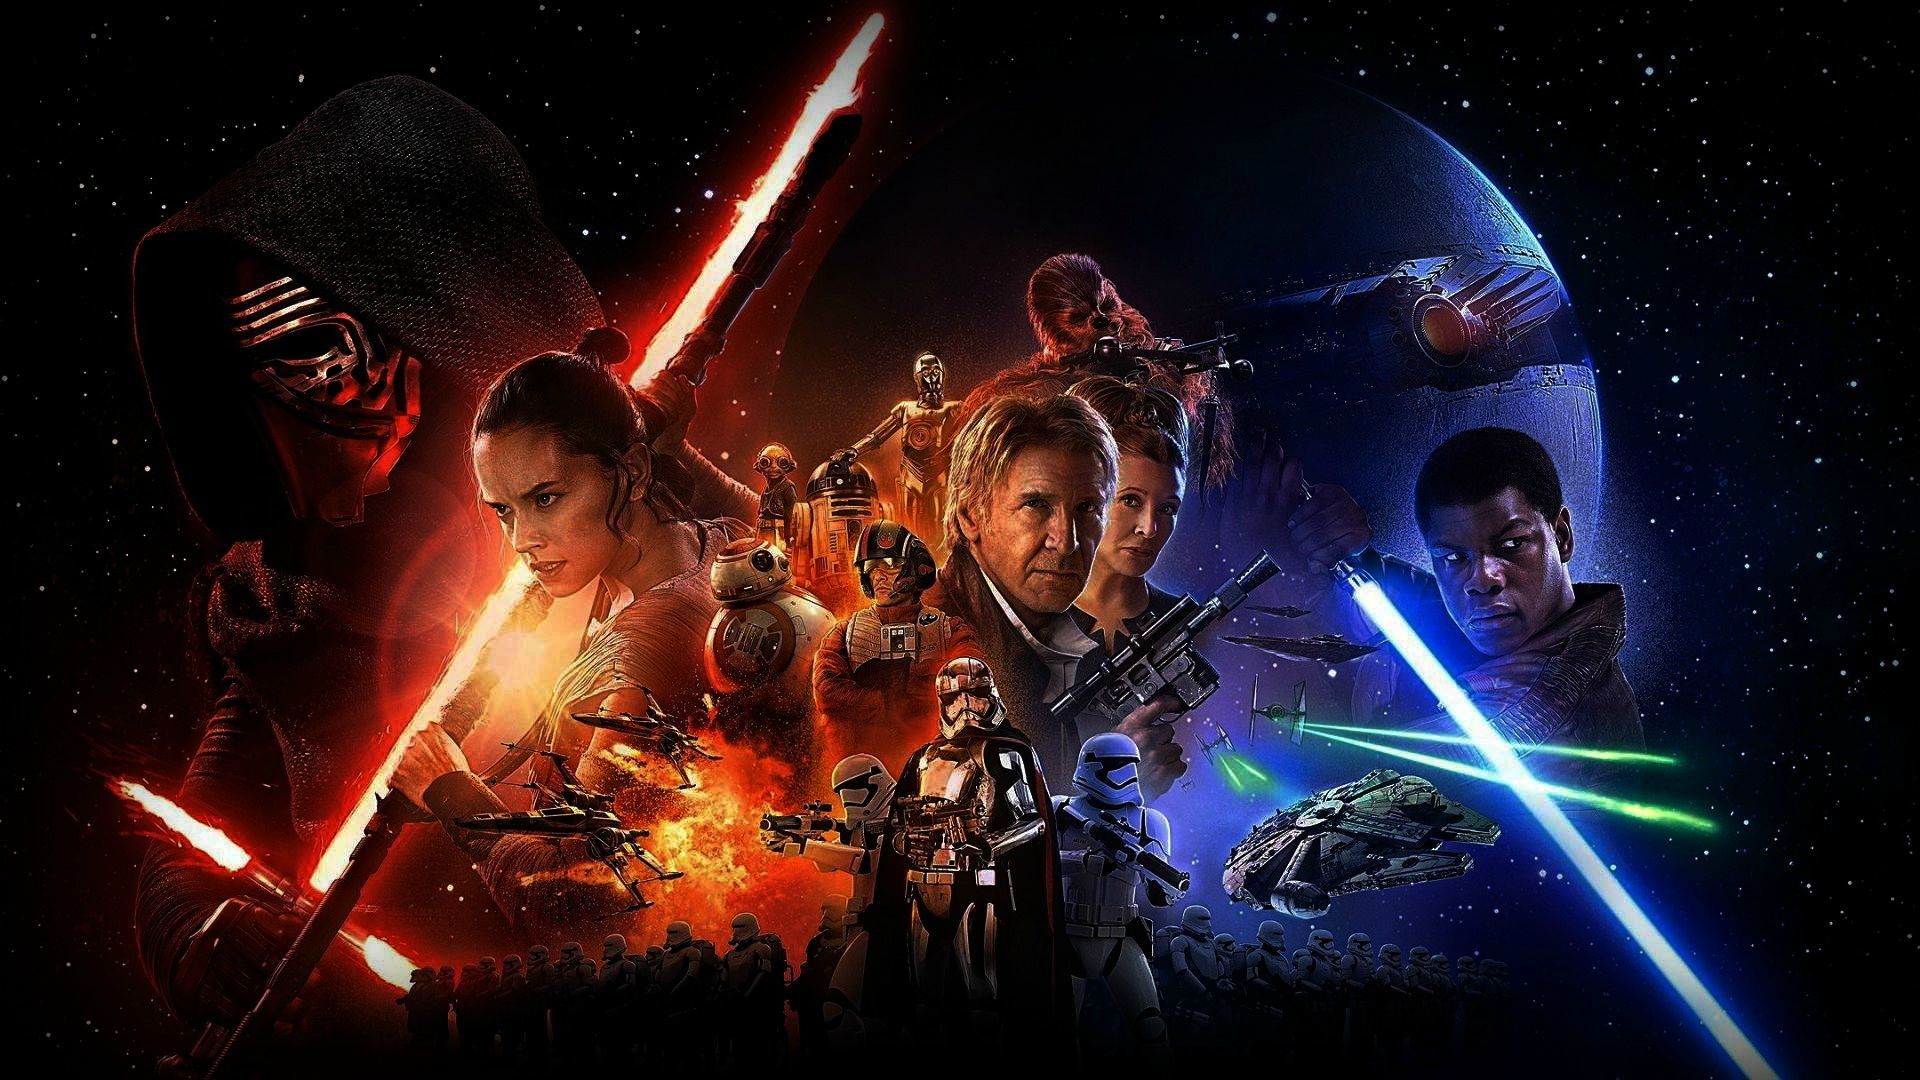 The Force Awakens Wallpapers Top Free The Force Awakens Backgrounds Wallpaperaccess